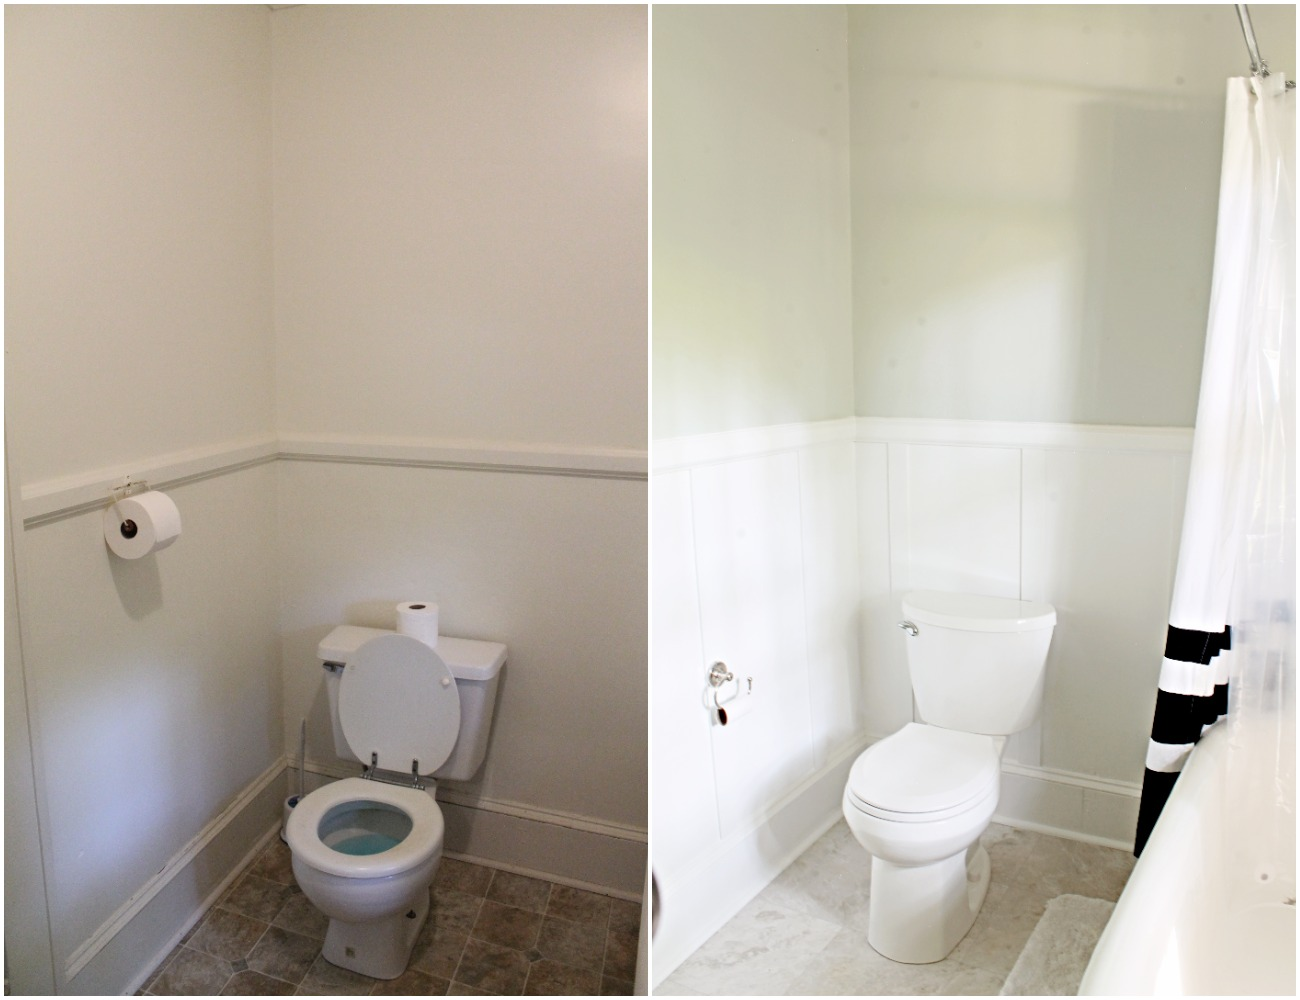 House Flipping Before and After - DIY BUDGET BATHROOM IDEAS (6).jpg